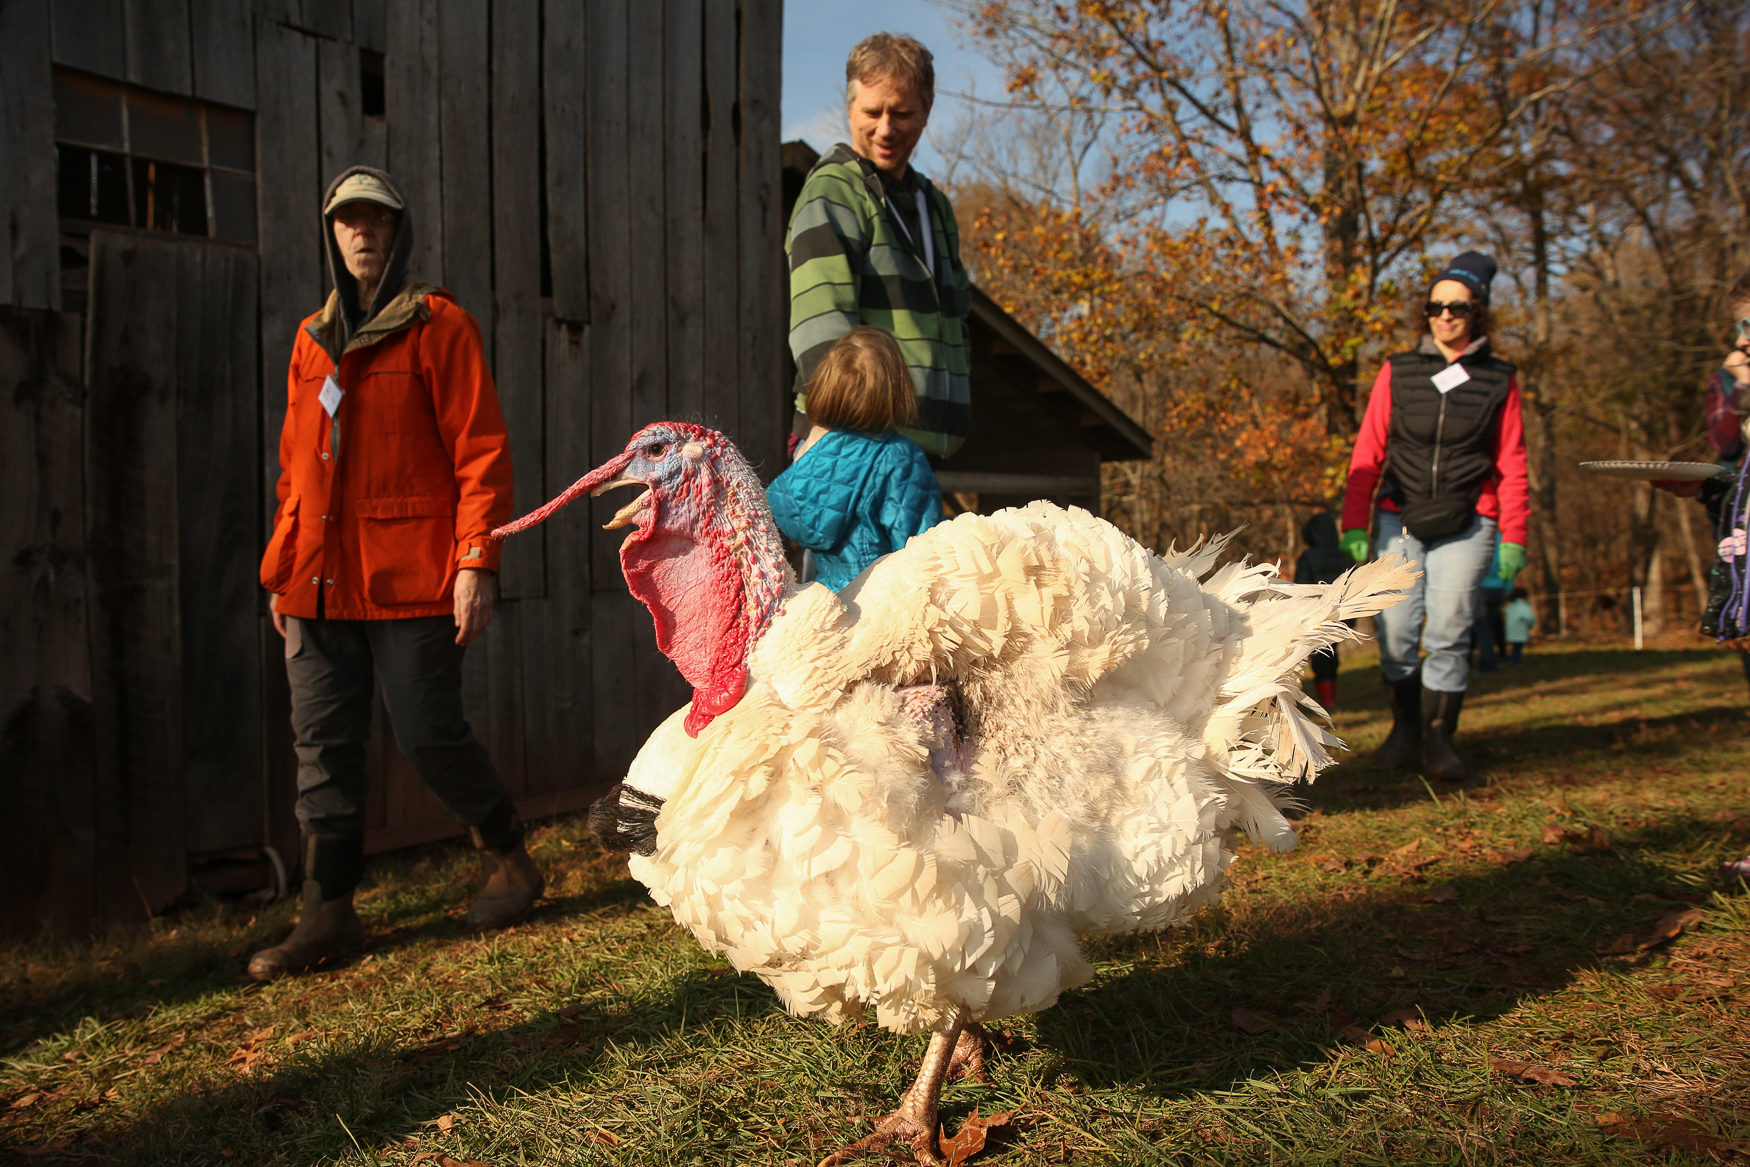 Hundreds of people visited the Poplar Springs Animal Sanctuary in Poolesville, Maryland on Saturday, November 17 for the annual Thanksgiving for the Turkeys. Attendees brought dishes to share and enjoyed a{ } vegan Thanksgiving feast together while interacting with the sanctuary's residents - some of whom were spared from commercial farms where they surely would've ended up on someone's table. The animals ate first, dining on fruits and vegetables before walking around the crowds and receiving lots of love from attendees. To conclude the festivities, guests gathered around and tossed in pumpkins and apples for the sanctuary's resident pigs. (Amanda Andrade-Rhoades/DC Refined)